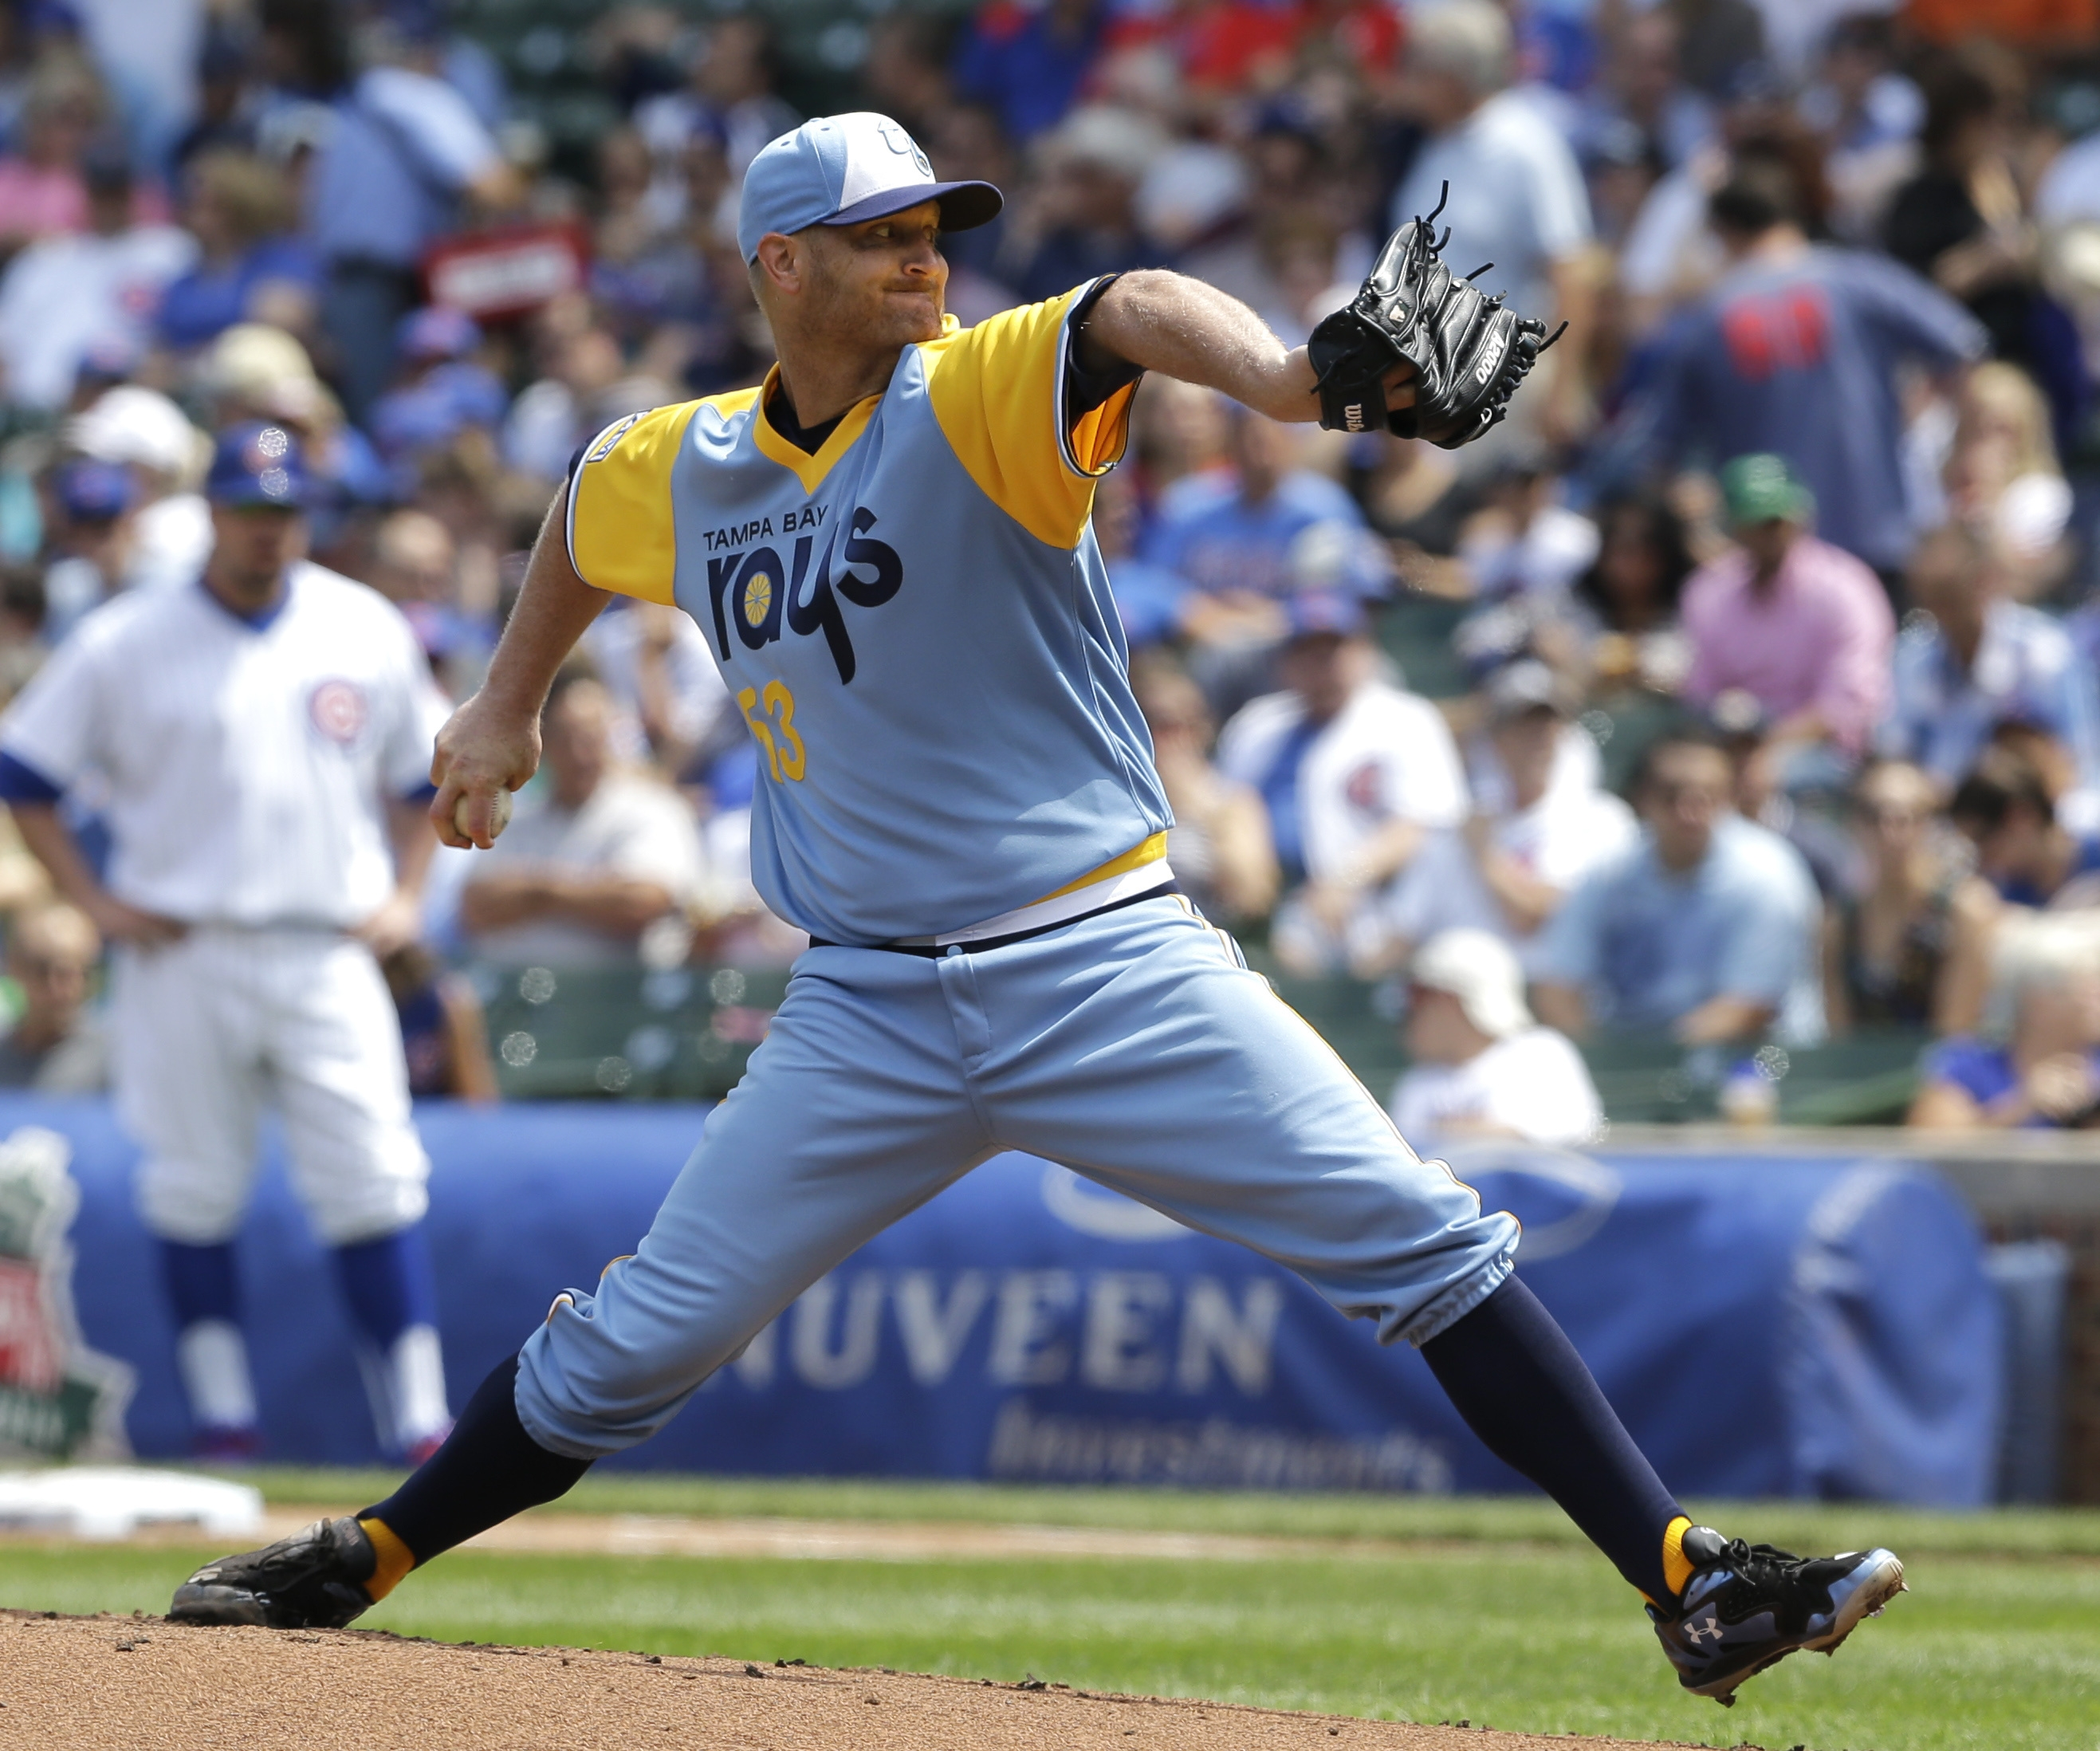 Tampa Bay Rays starter Alex Cobb shows off the throwback uniforms worn last Sunday against the Cubs in Wrigley Field in Chicago. (AP Photo/Nam Y. Huh)